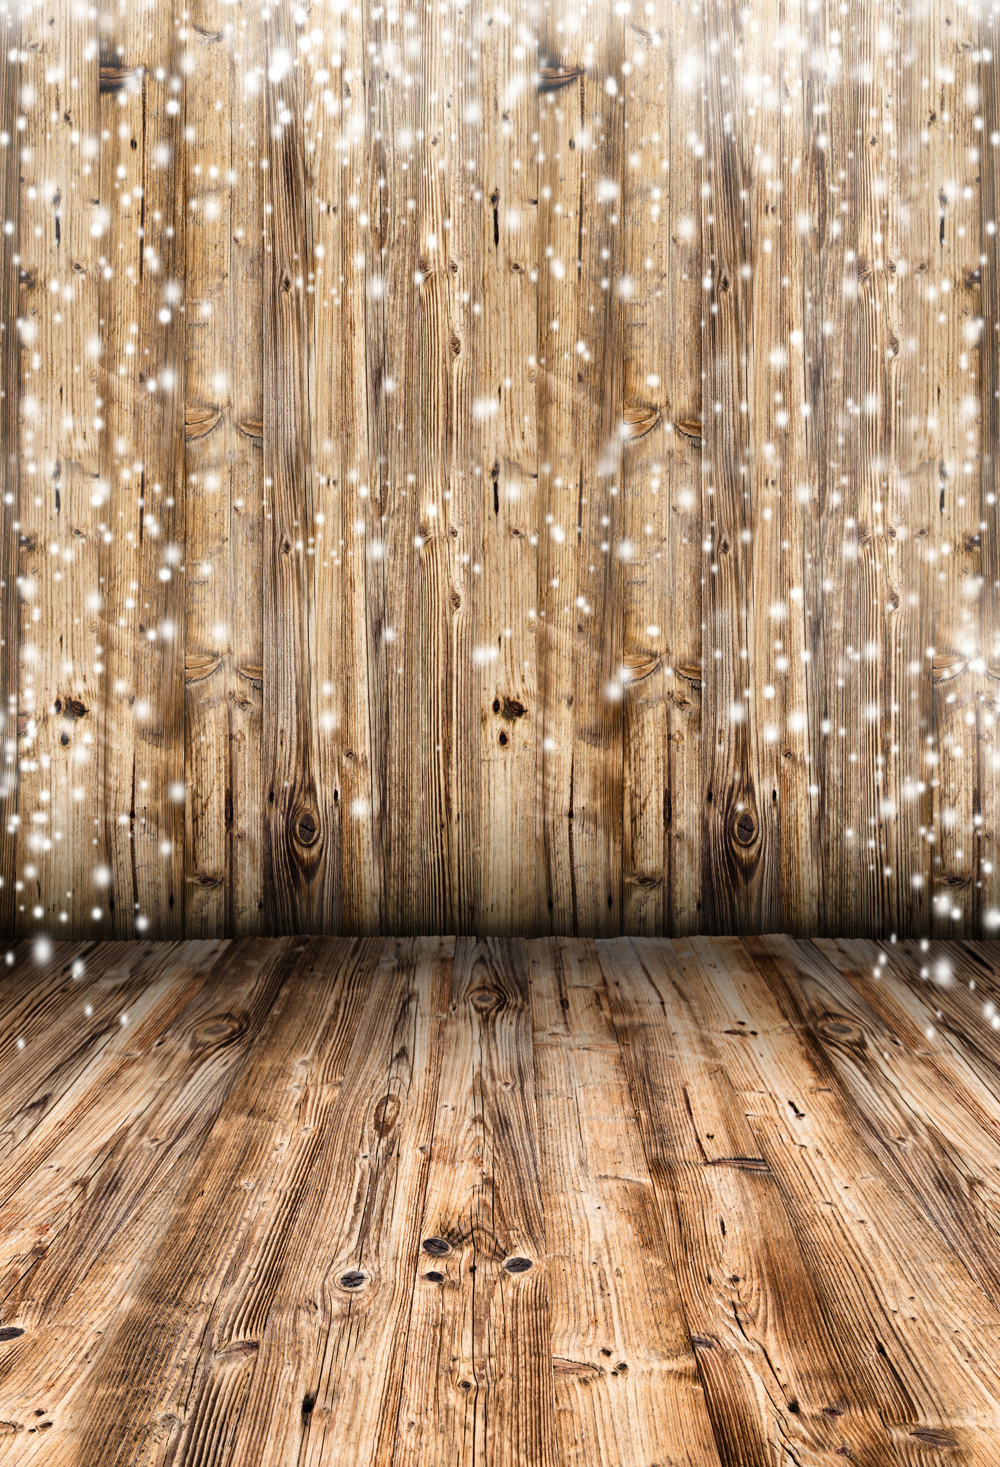 HUAYI 10x20ft wood floor backdrop wood vinyl wedding photography backdrops photo props background wood XT-6393 photography backdrops newborn wood floor photo background baby flower backdrop for photo studio props small size